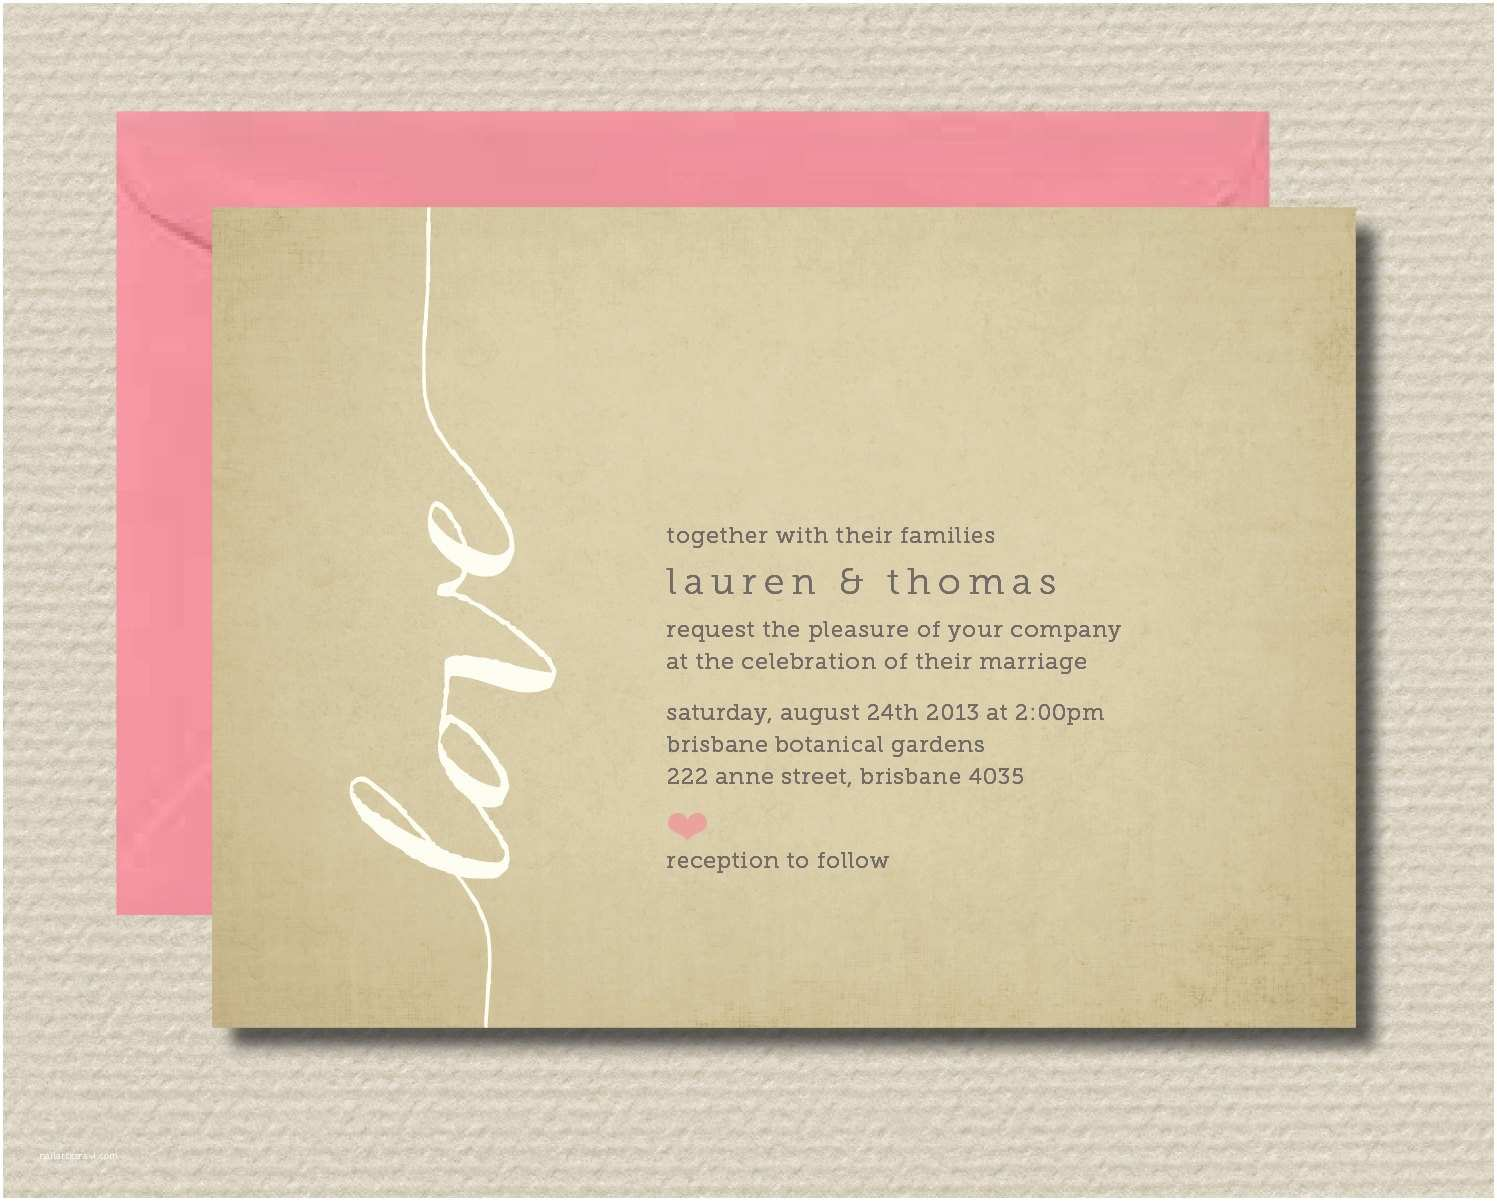 How to Rsvp for Wedding Invitation Printable Wedding Invitation & Rsvp Love by Rosiedaydesign